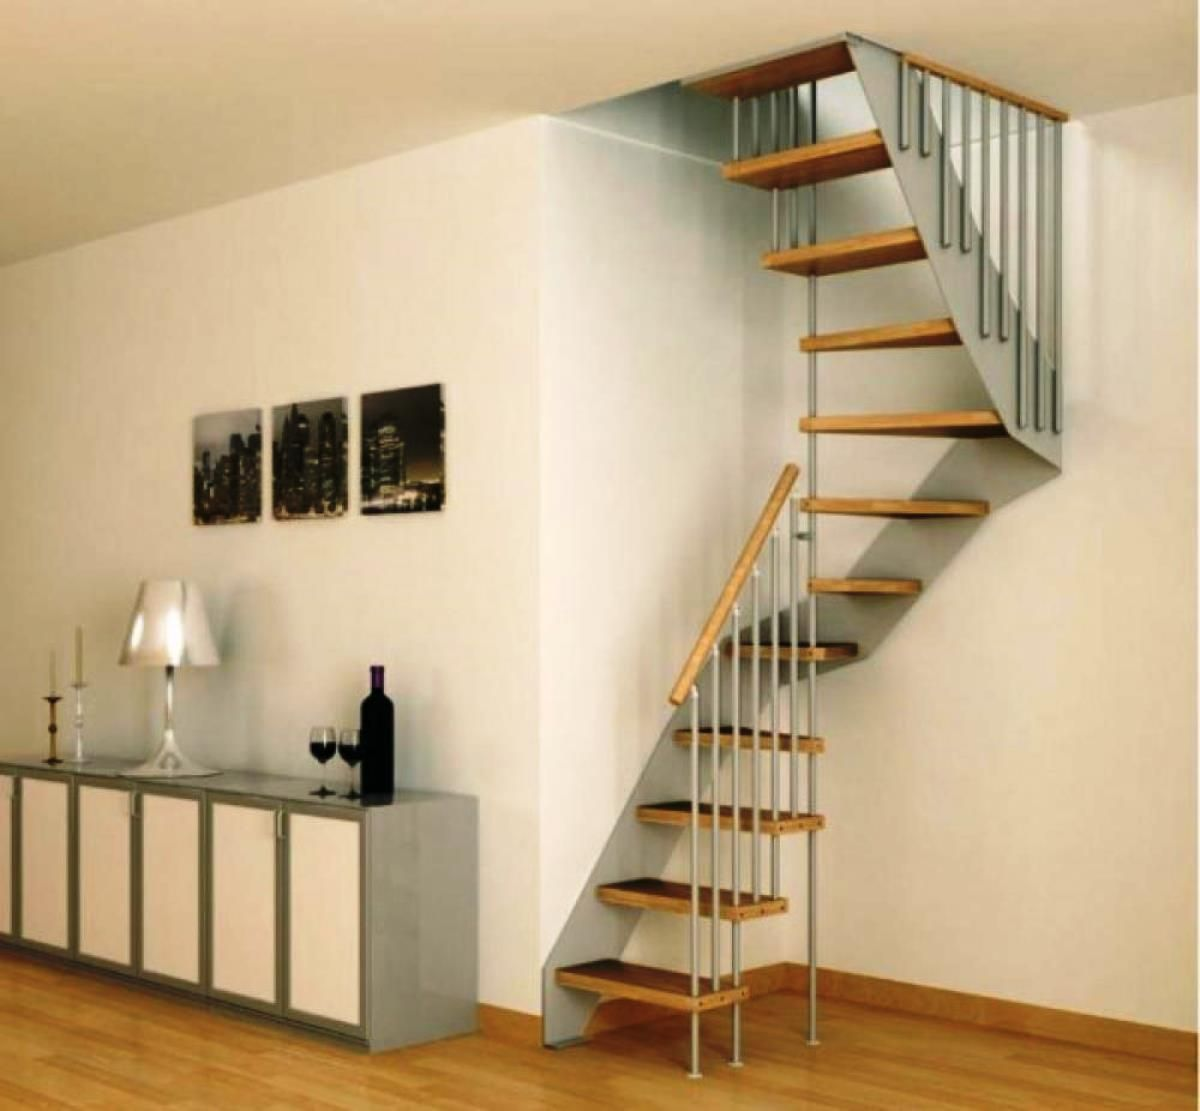 Interior Design Staircase Ideas For Small Spaces Staircase Design For Small Spaces In Modern Minimalist House